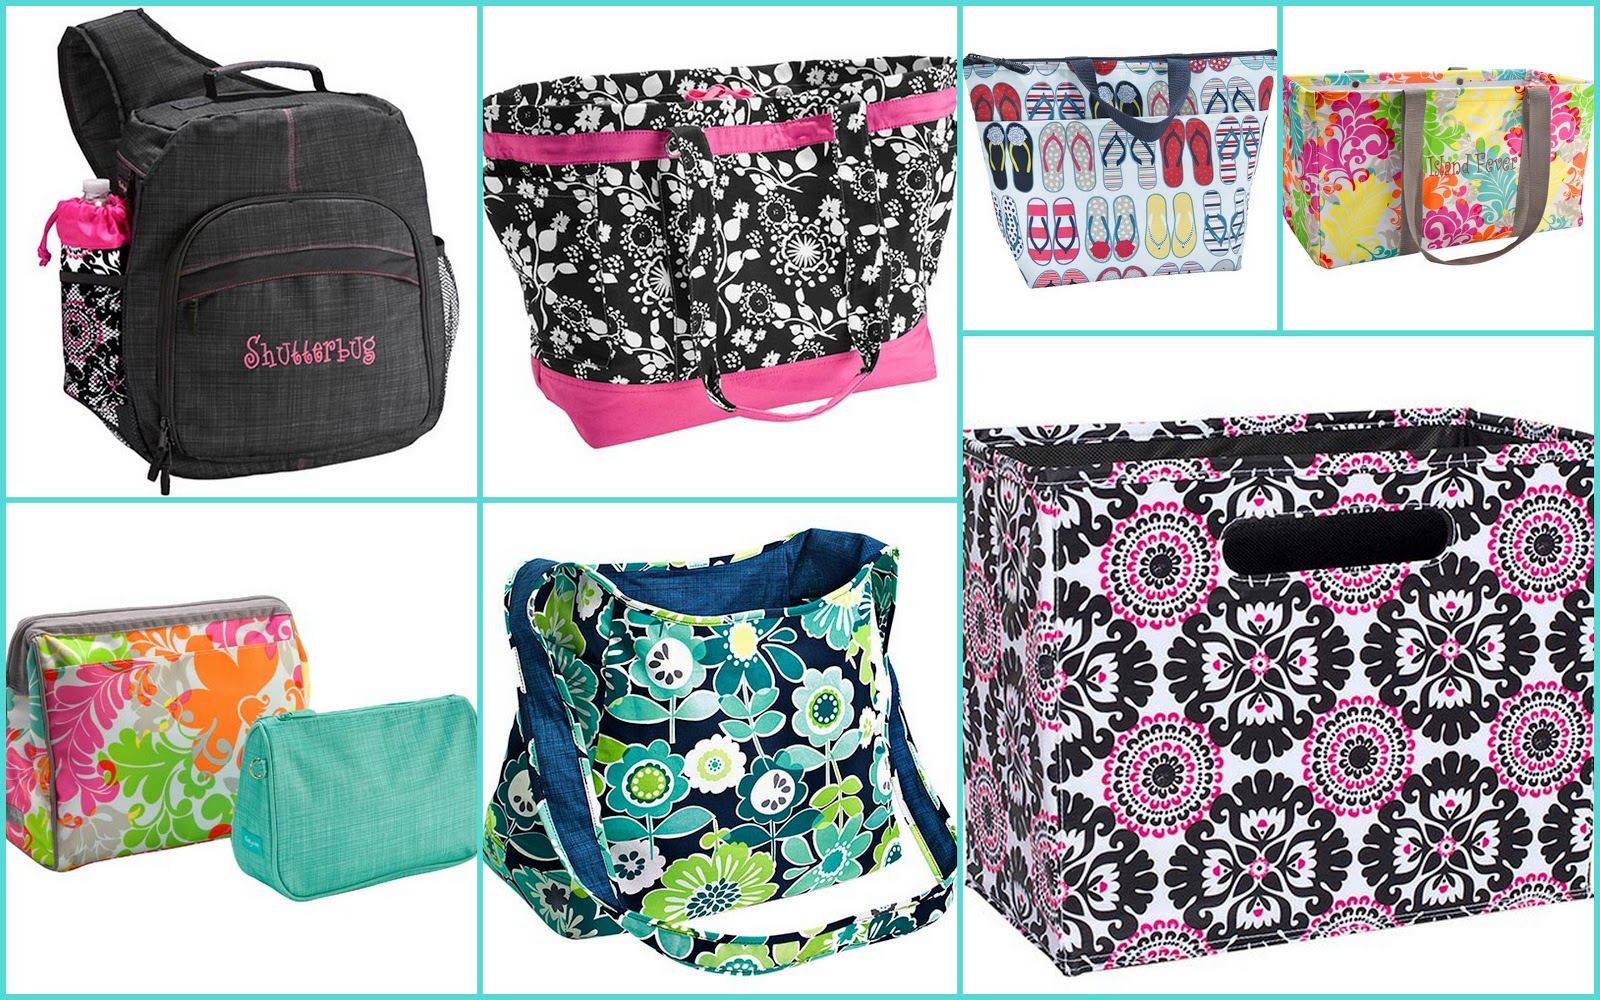 photo credits: Thirty-One Gifts